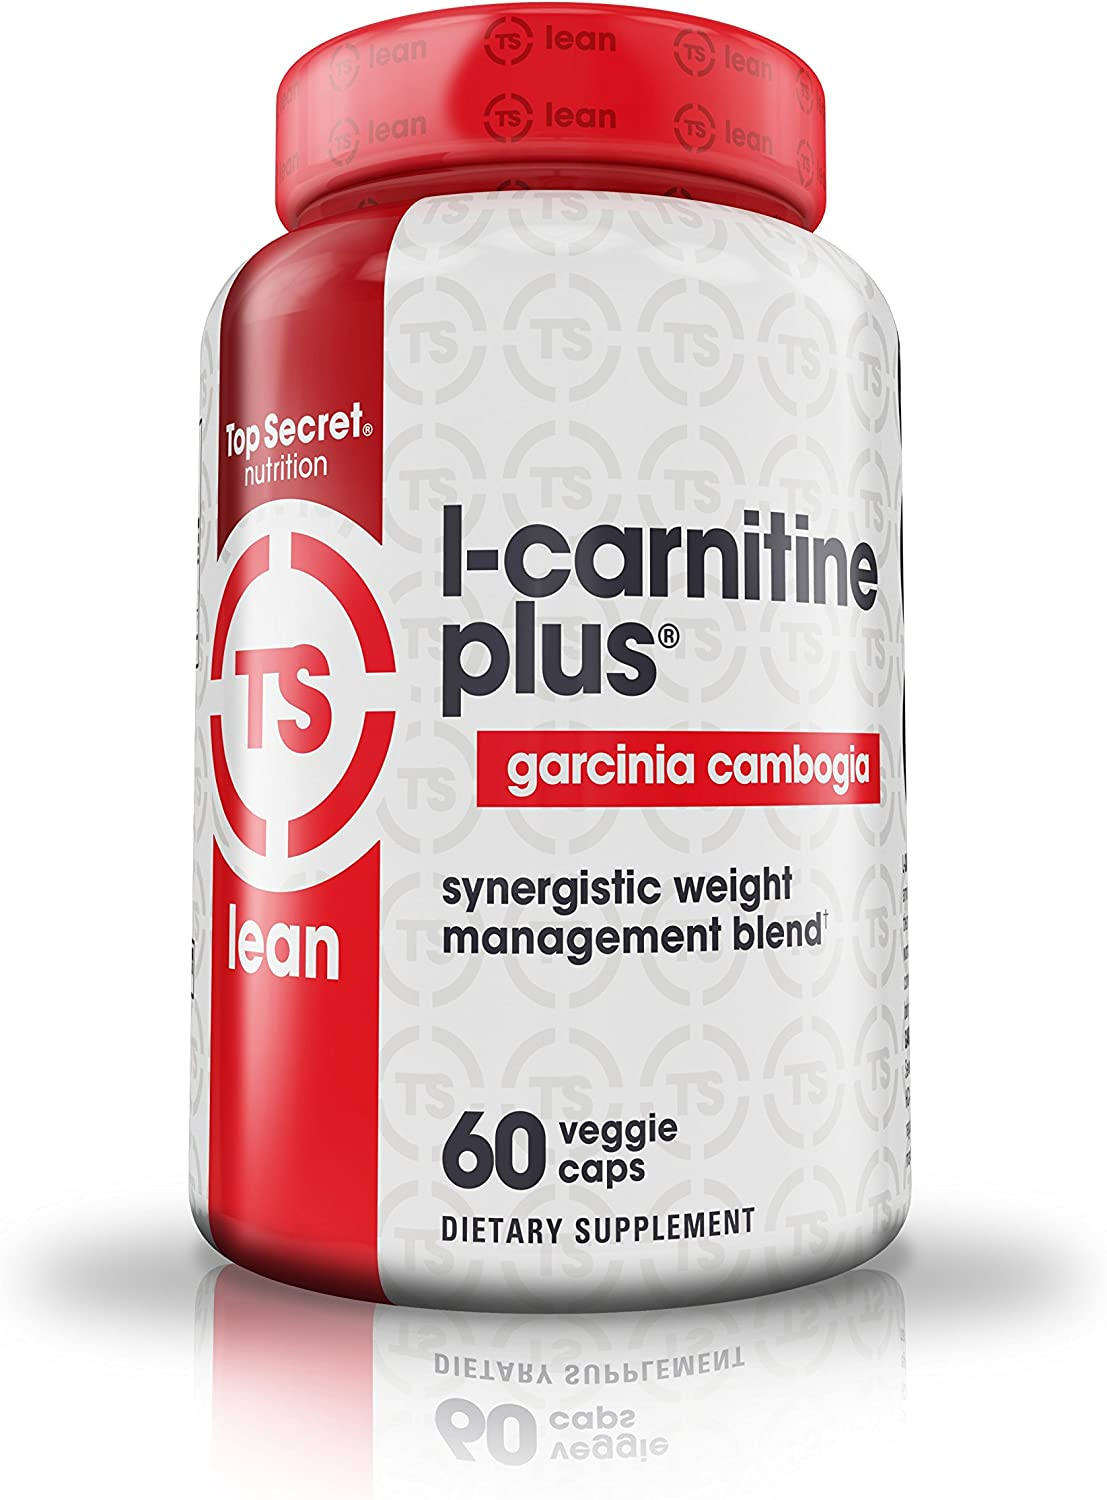 Top Our shop most popular Secret Nutrition L-Carnitine Cambogia Garcinia Plus Inexpensive Weight